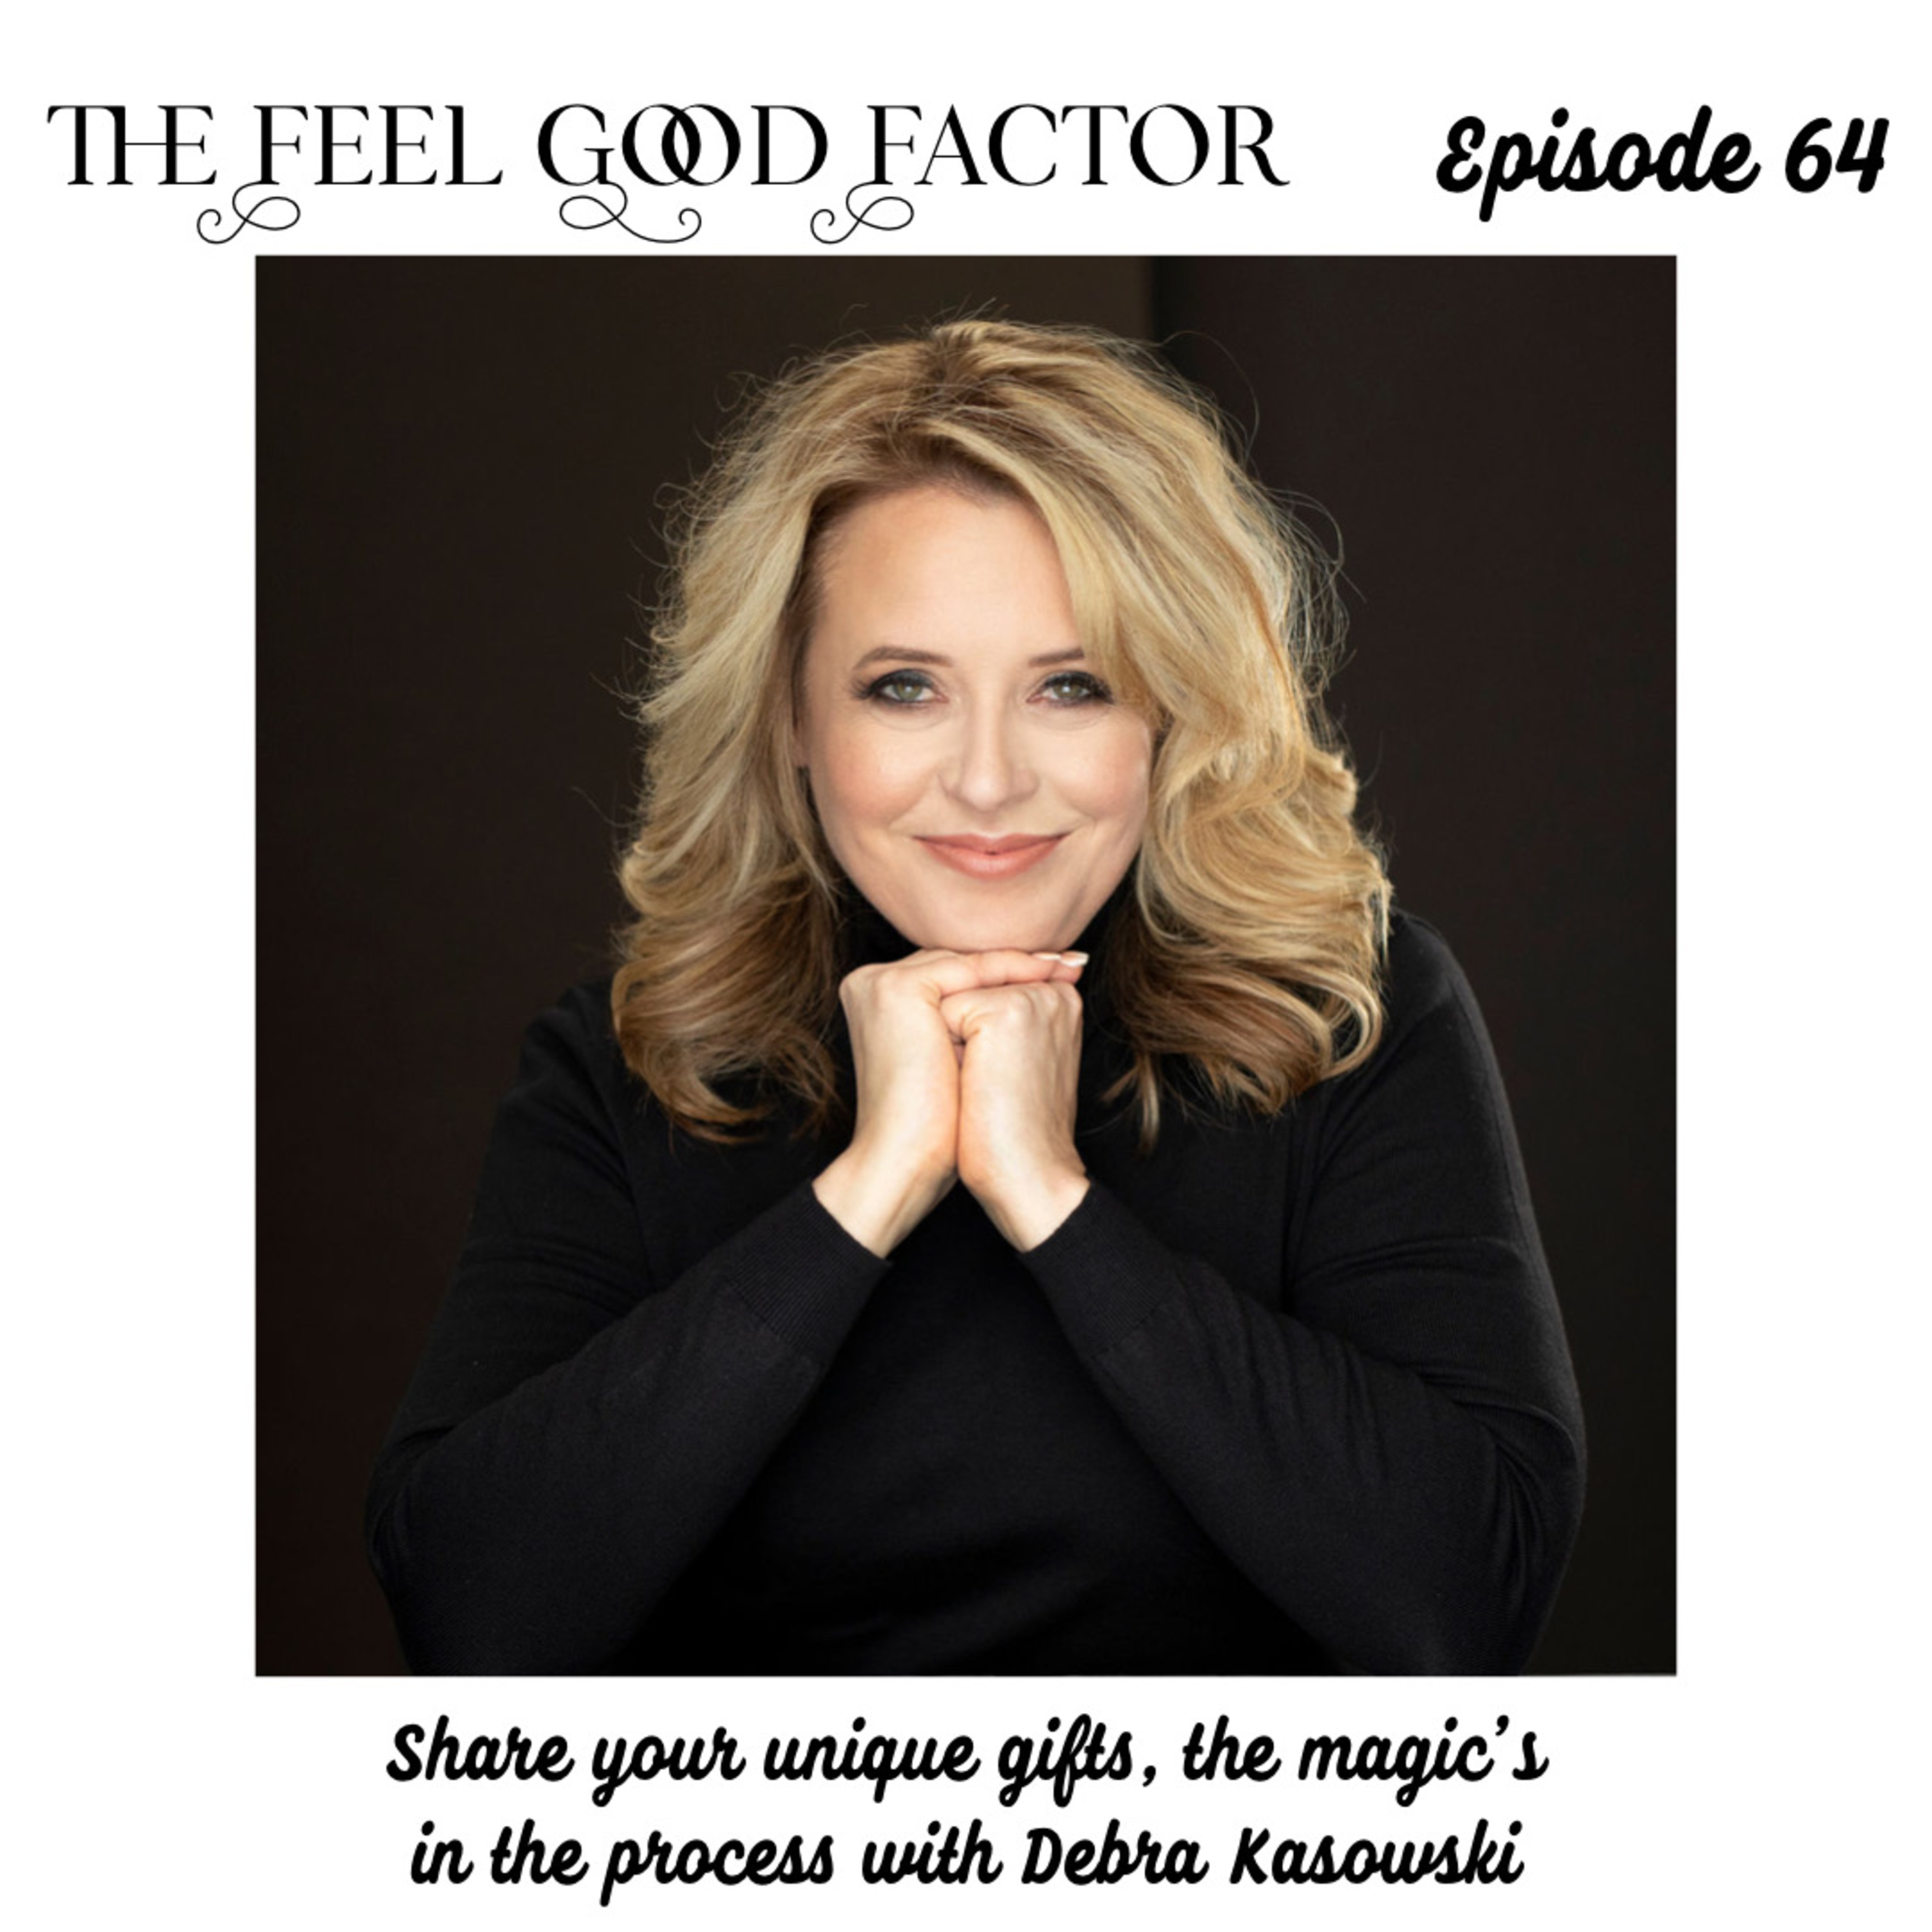 64: Share your unique gifts, the magic's in the process with Debra Kasowski